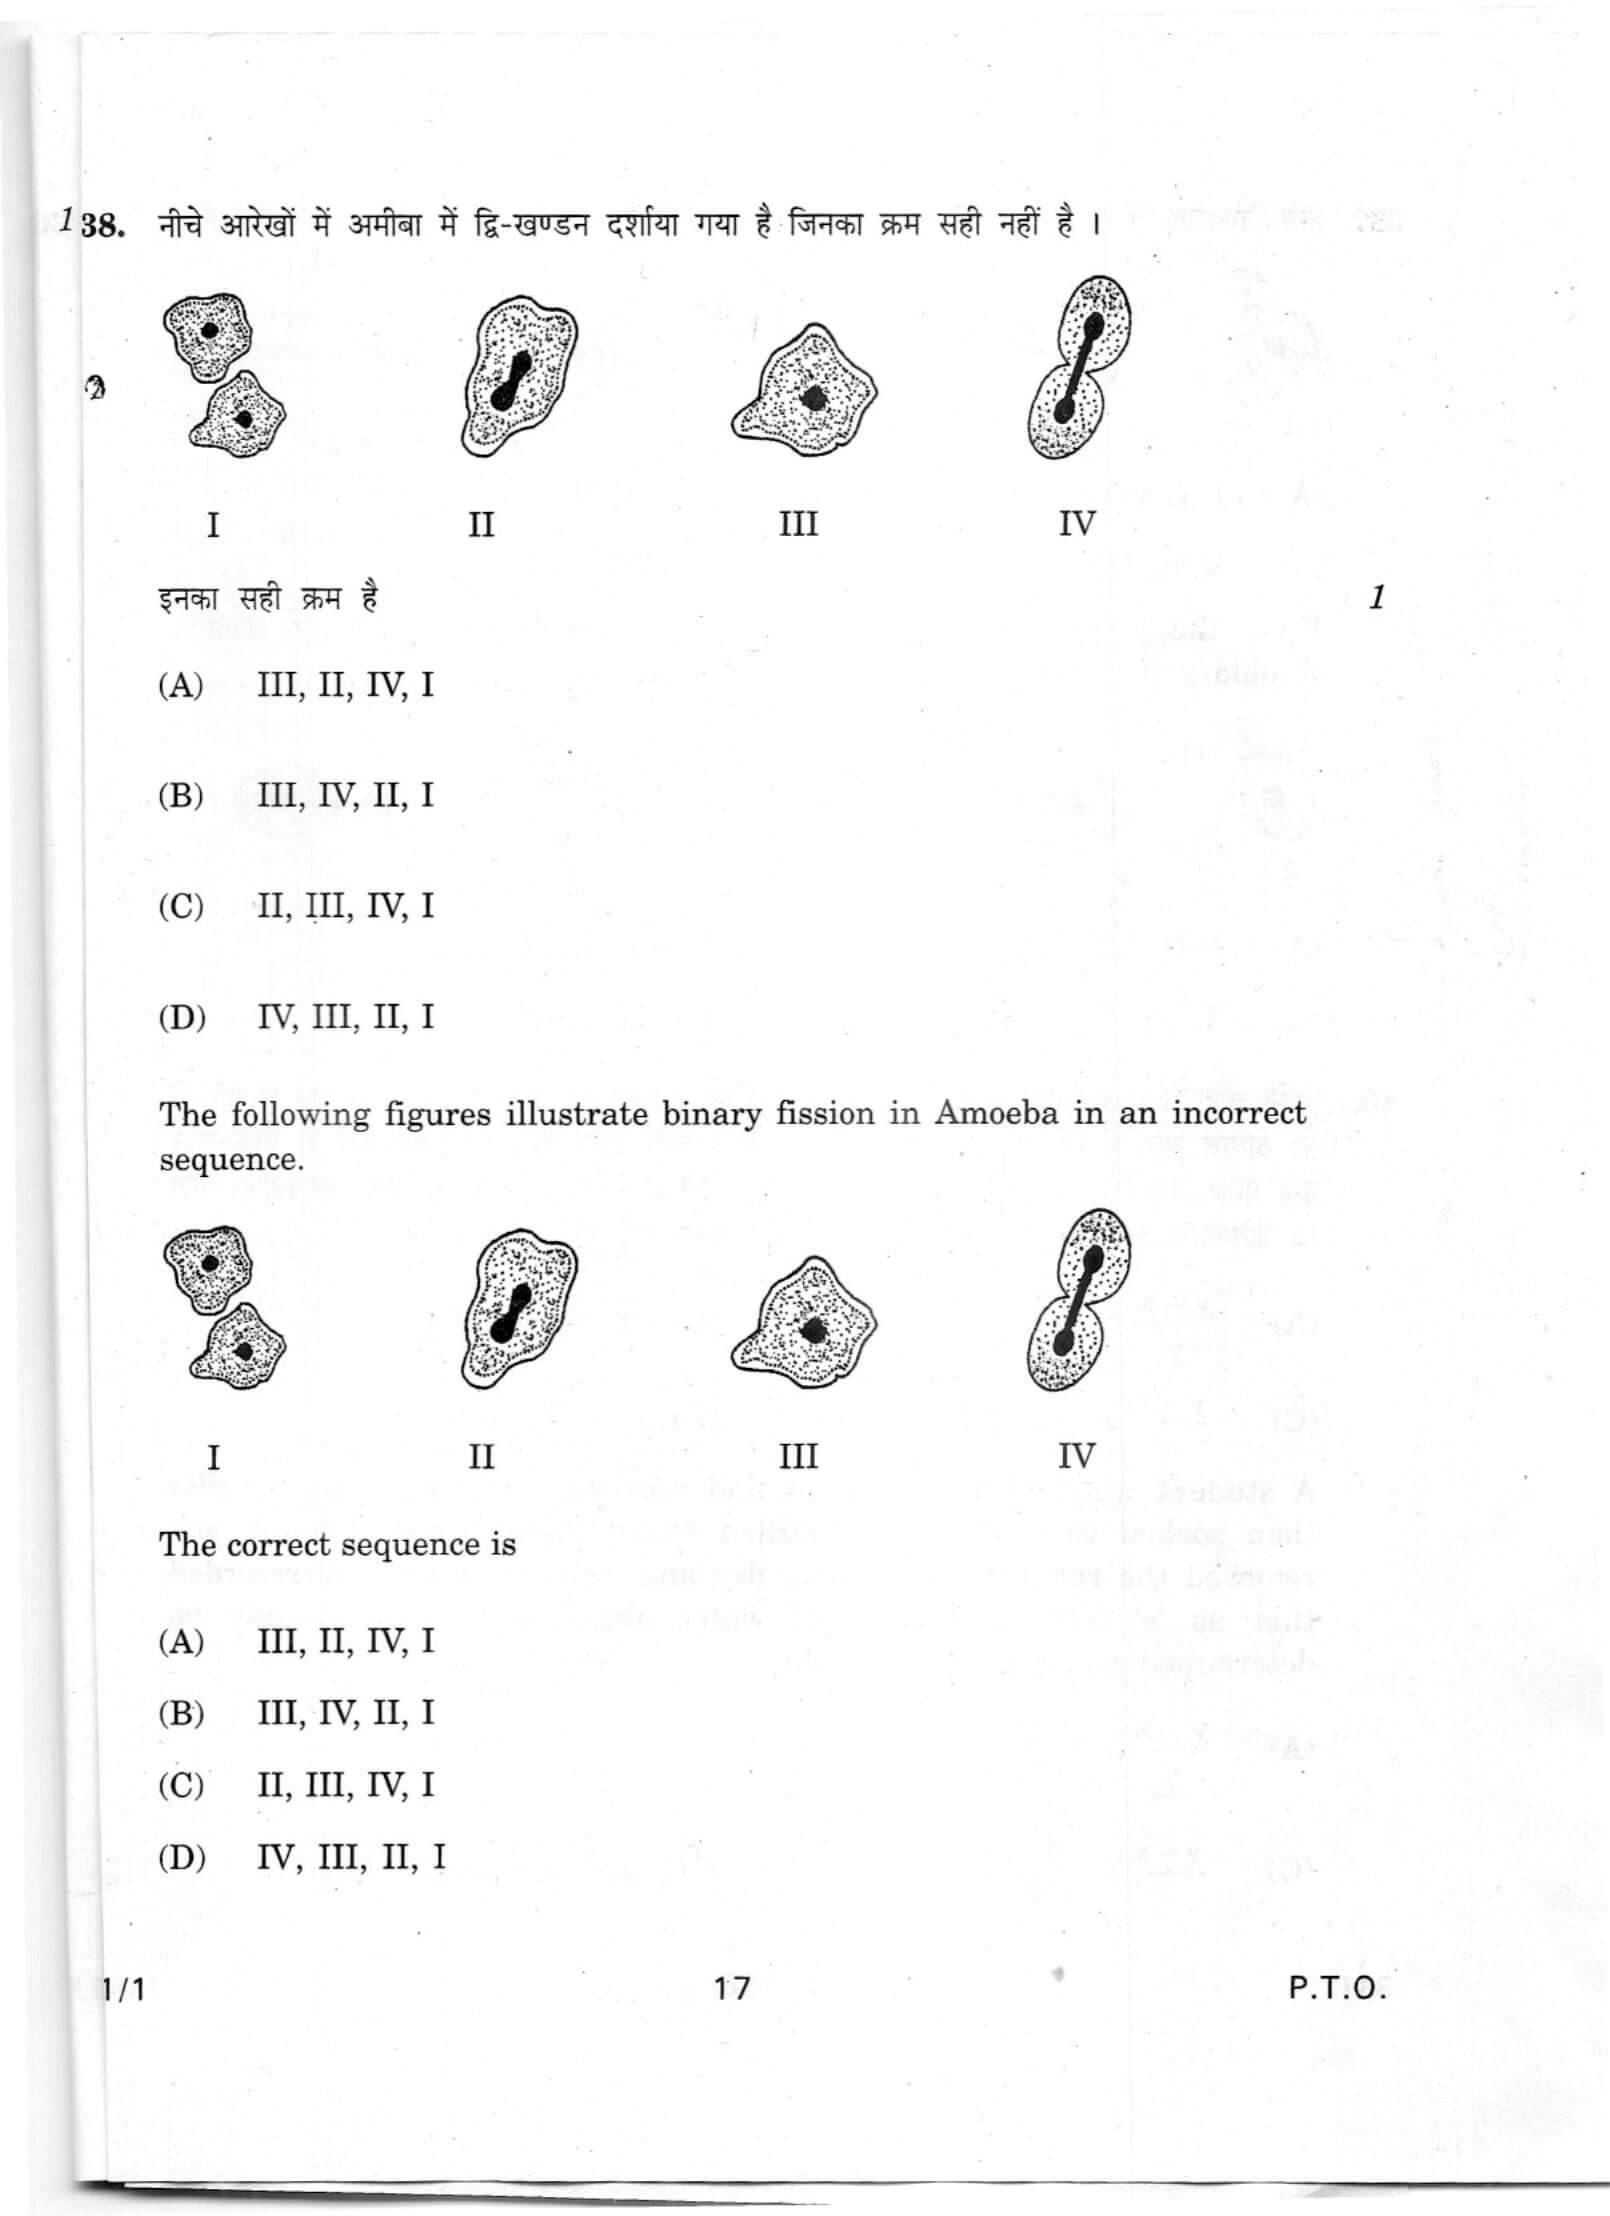 CBSE Class 10 Science Previous Year Question Paper 2012